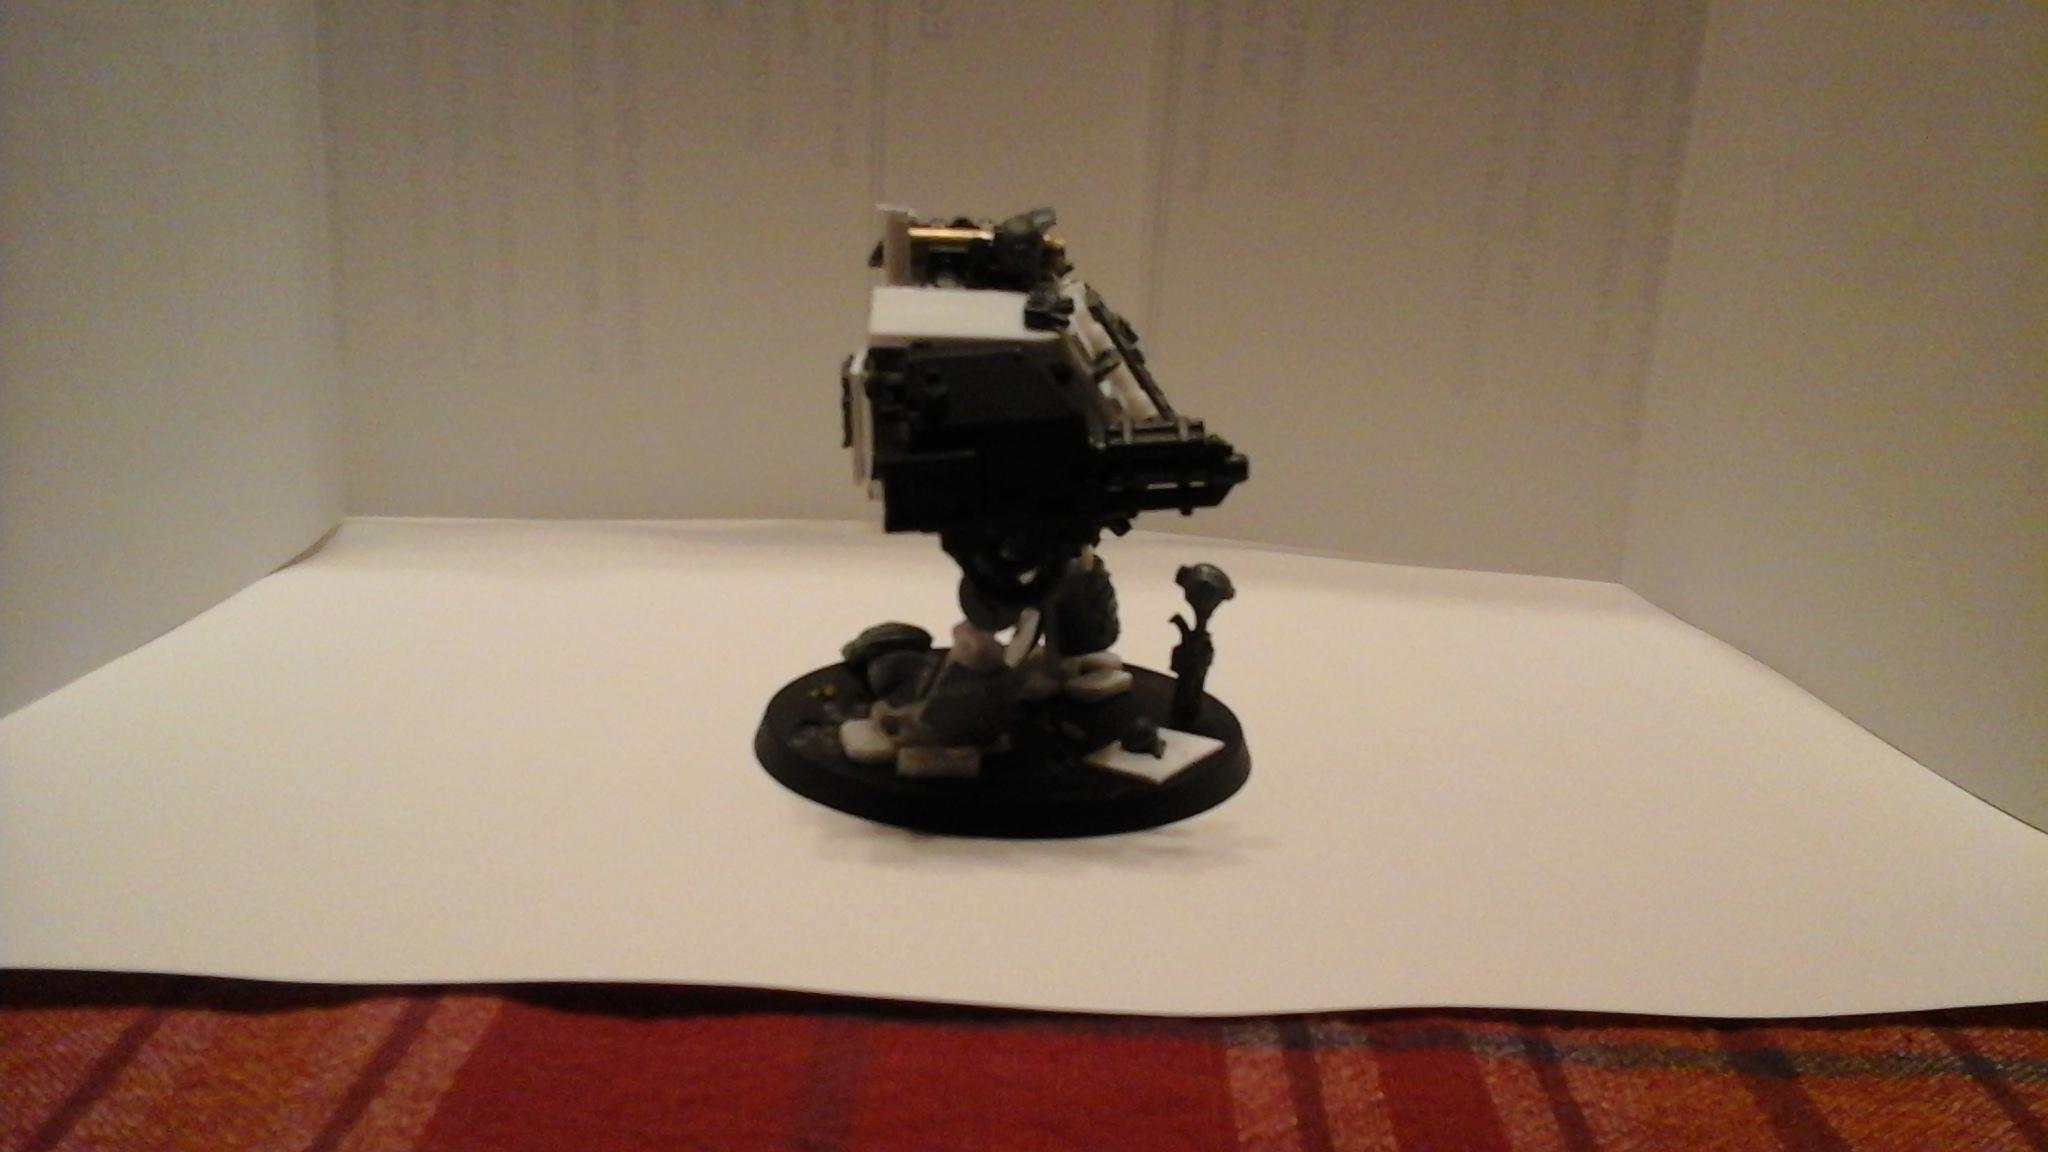 Dreadnought, Imperial Fists, Ironclad, Scratch Build, Space Marines, Warhammer 40,000